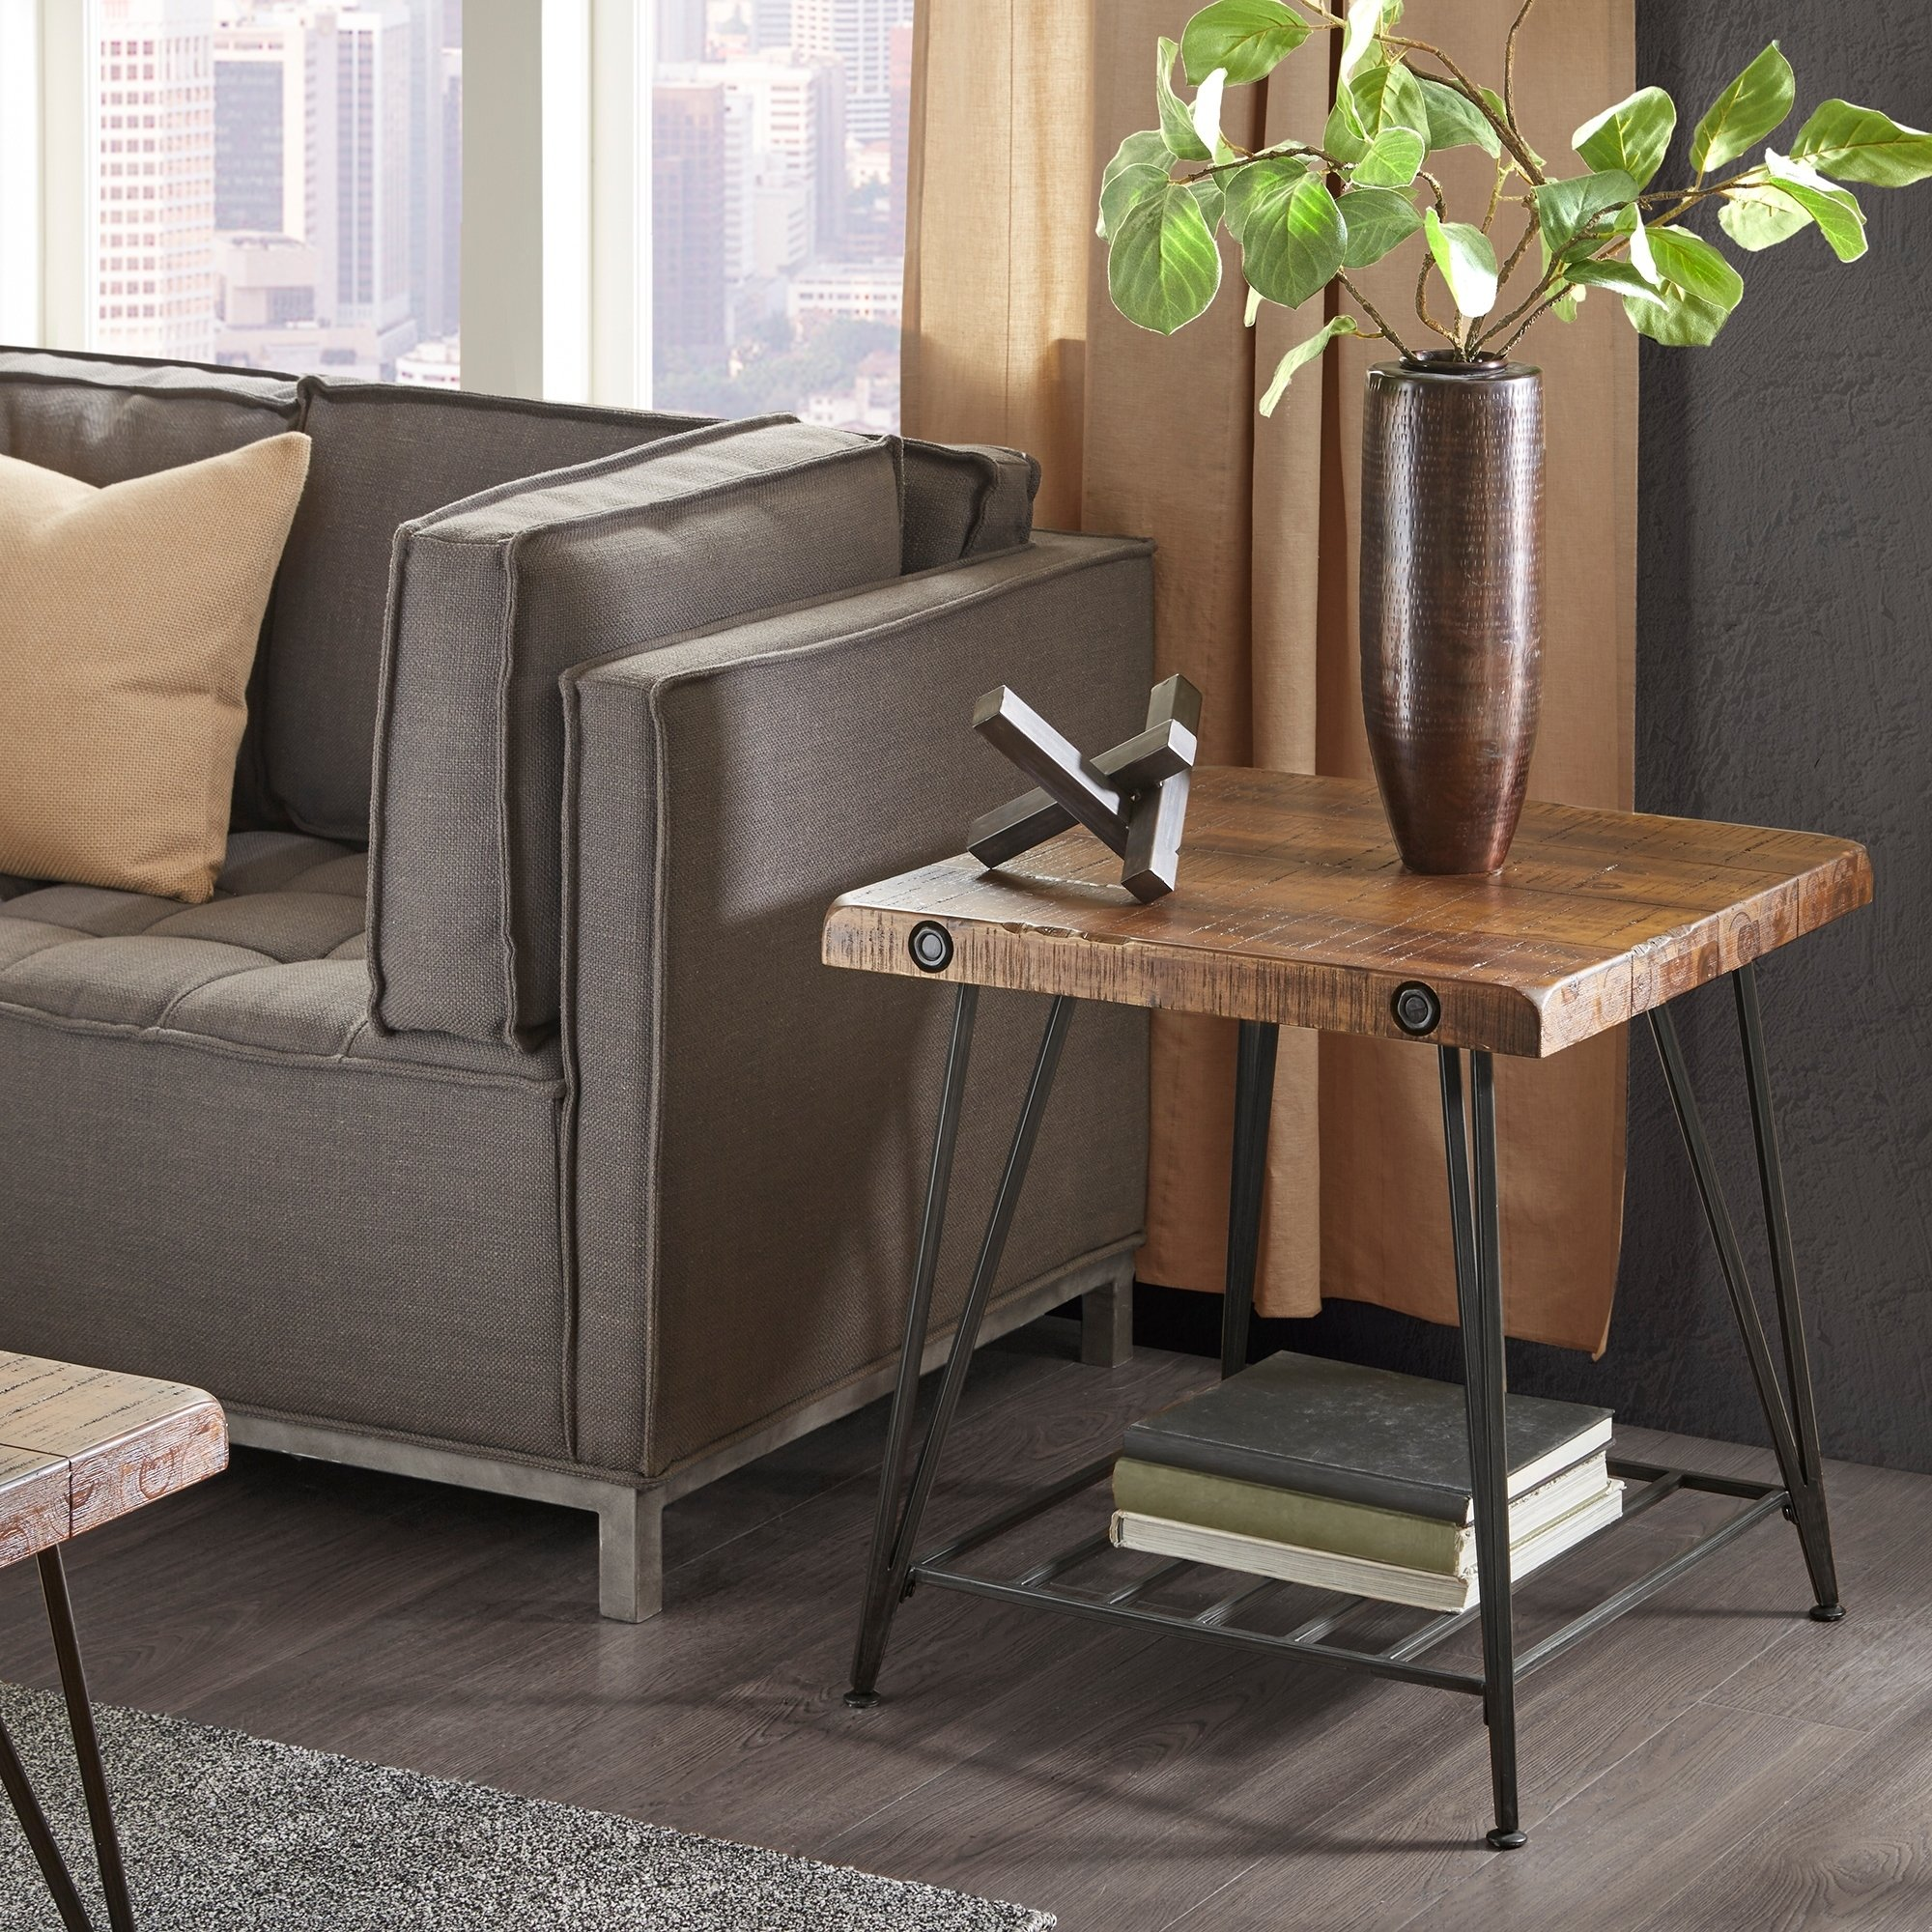 ink ivy trestle dark brown end table free shipping today room essentials accent marble gold coffee formal dining chairs wrought iron outdoor bookshelf natural cherry tables mats